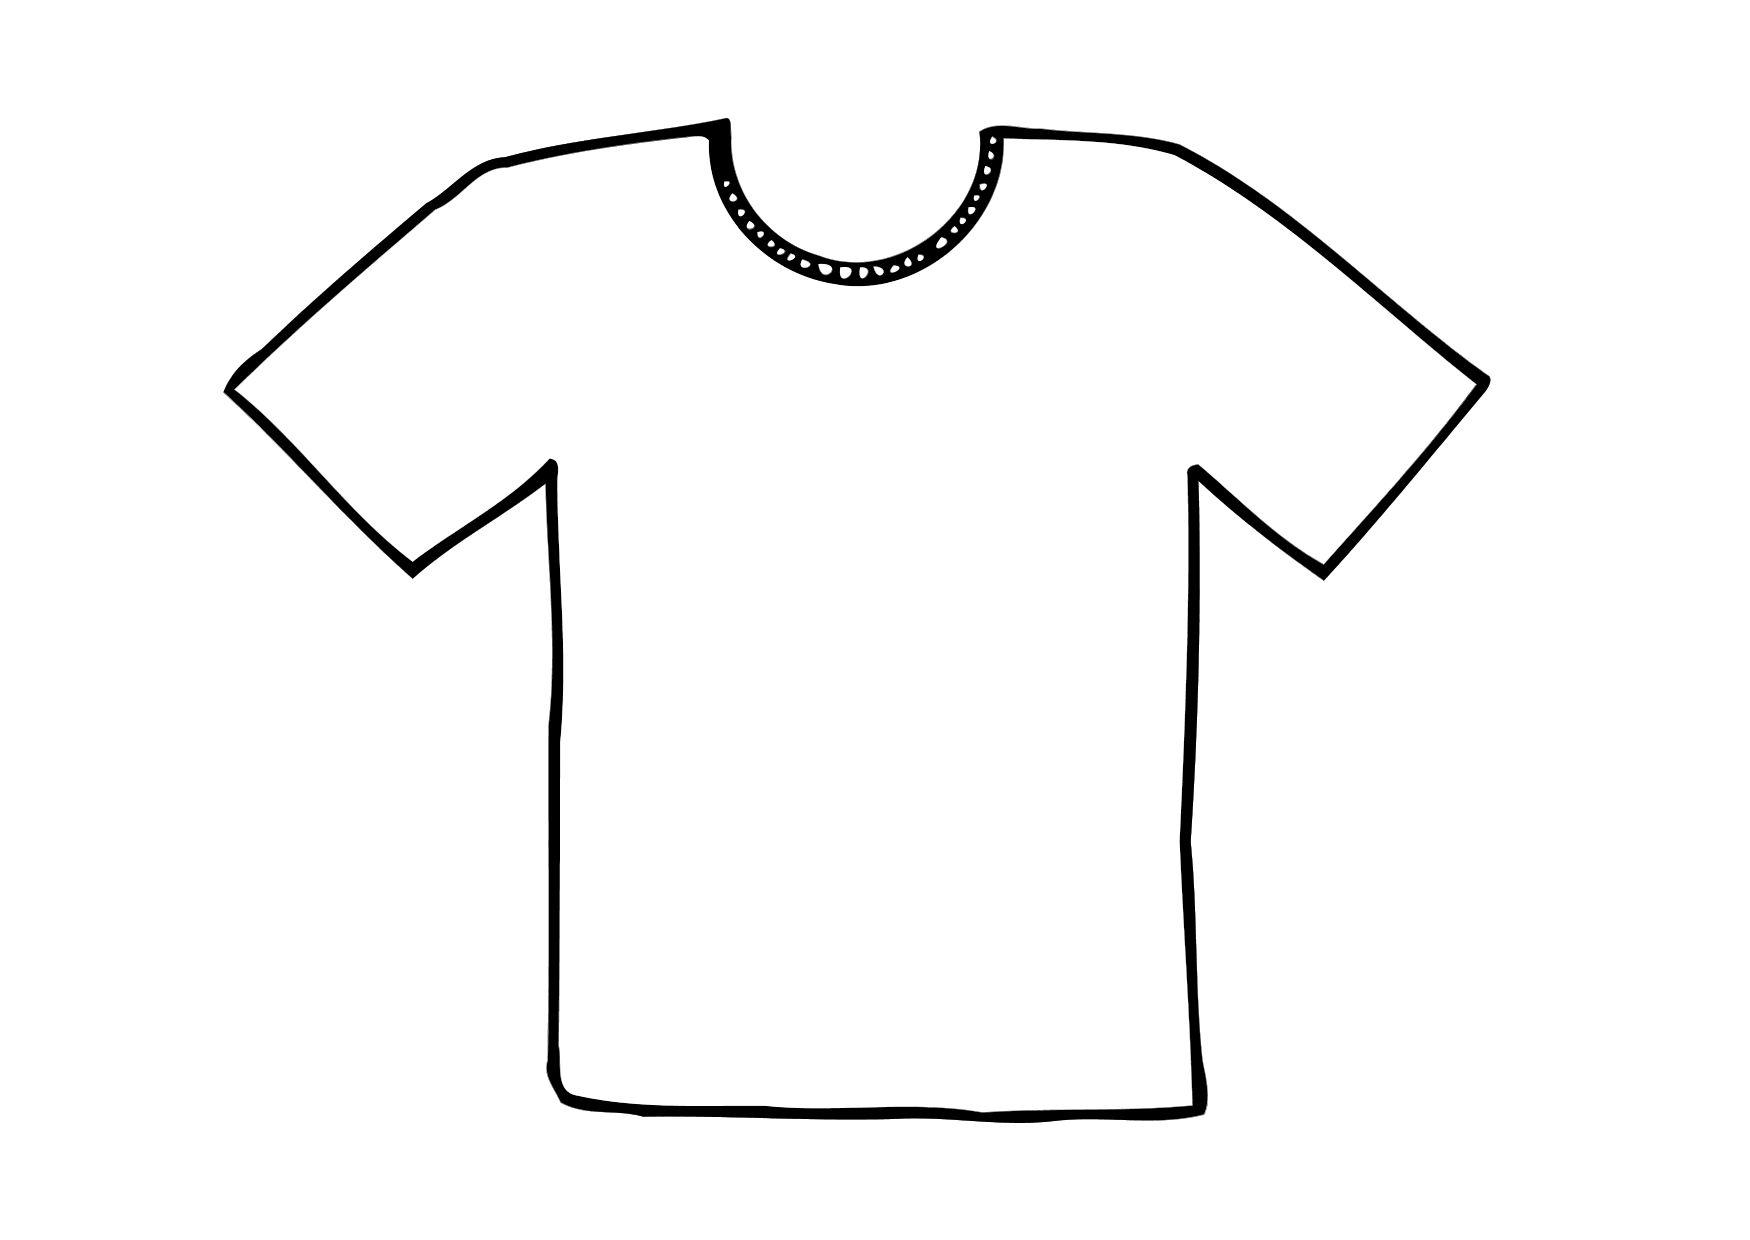 football cookie cutter template - coloriage t shirt img 12295